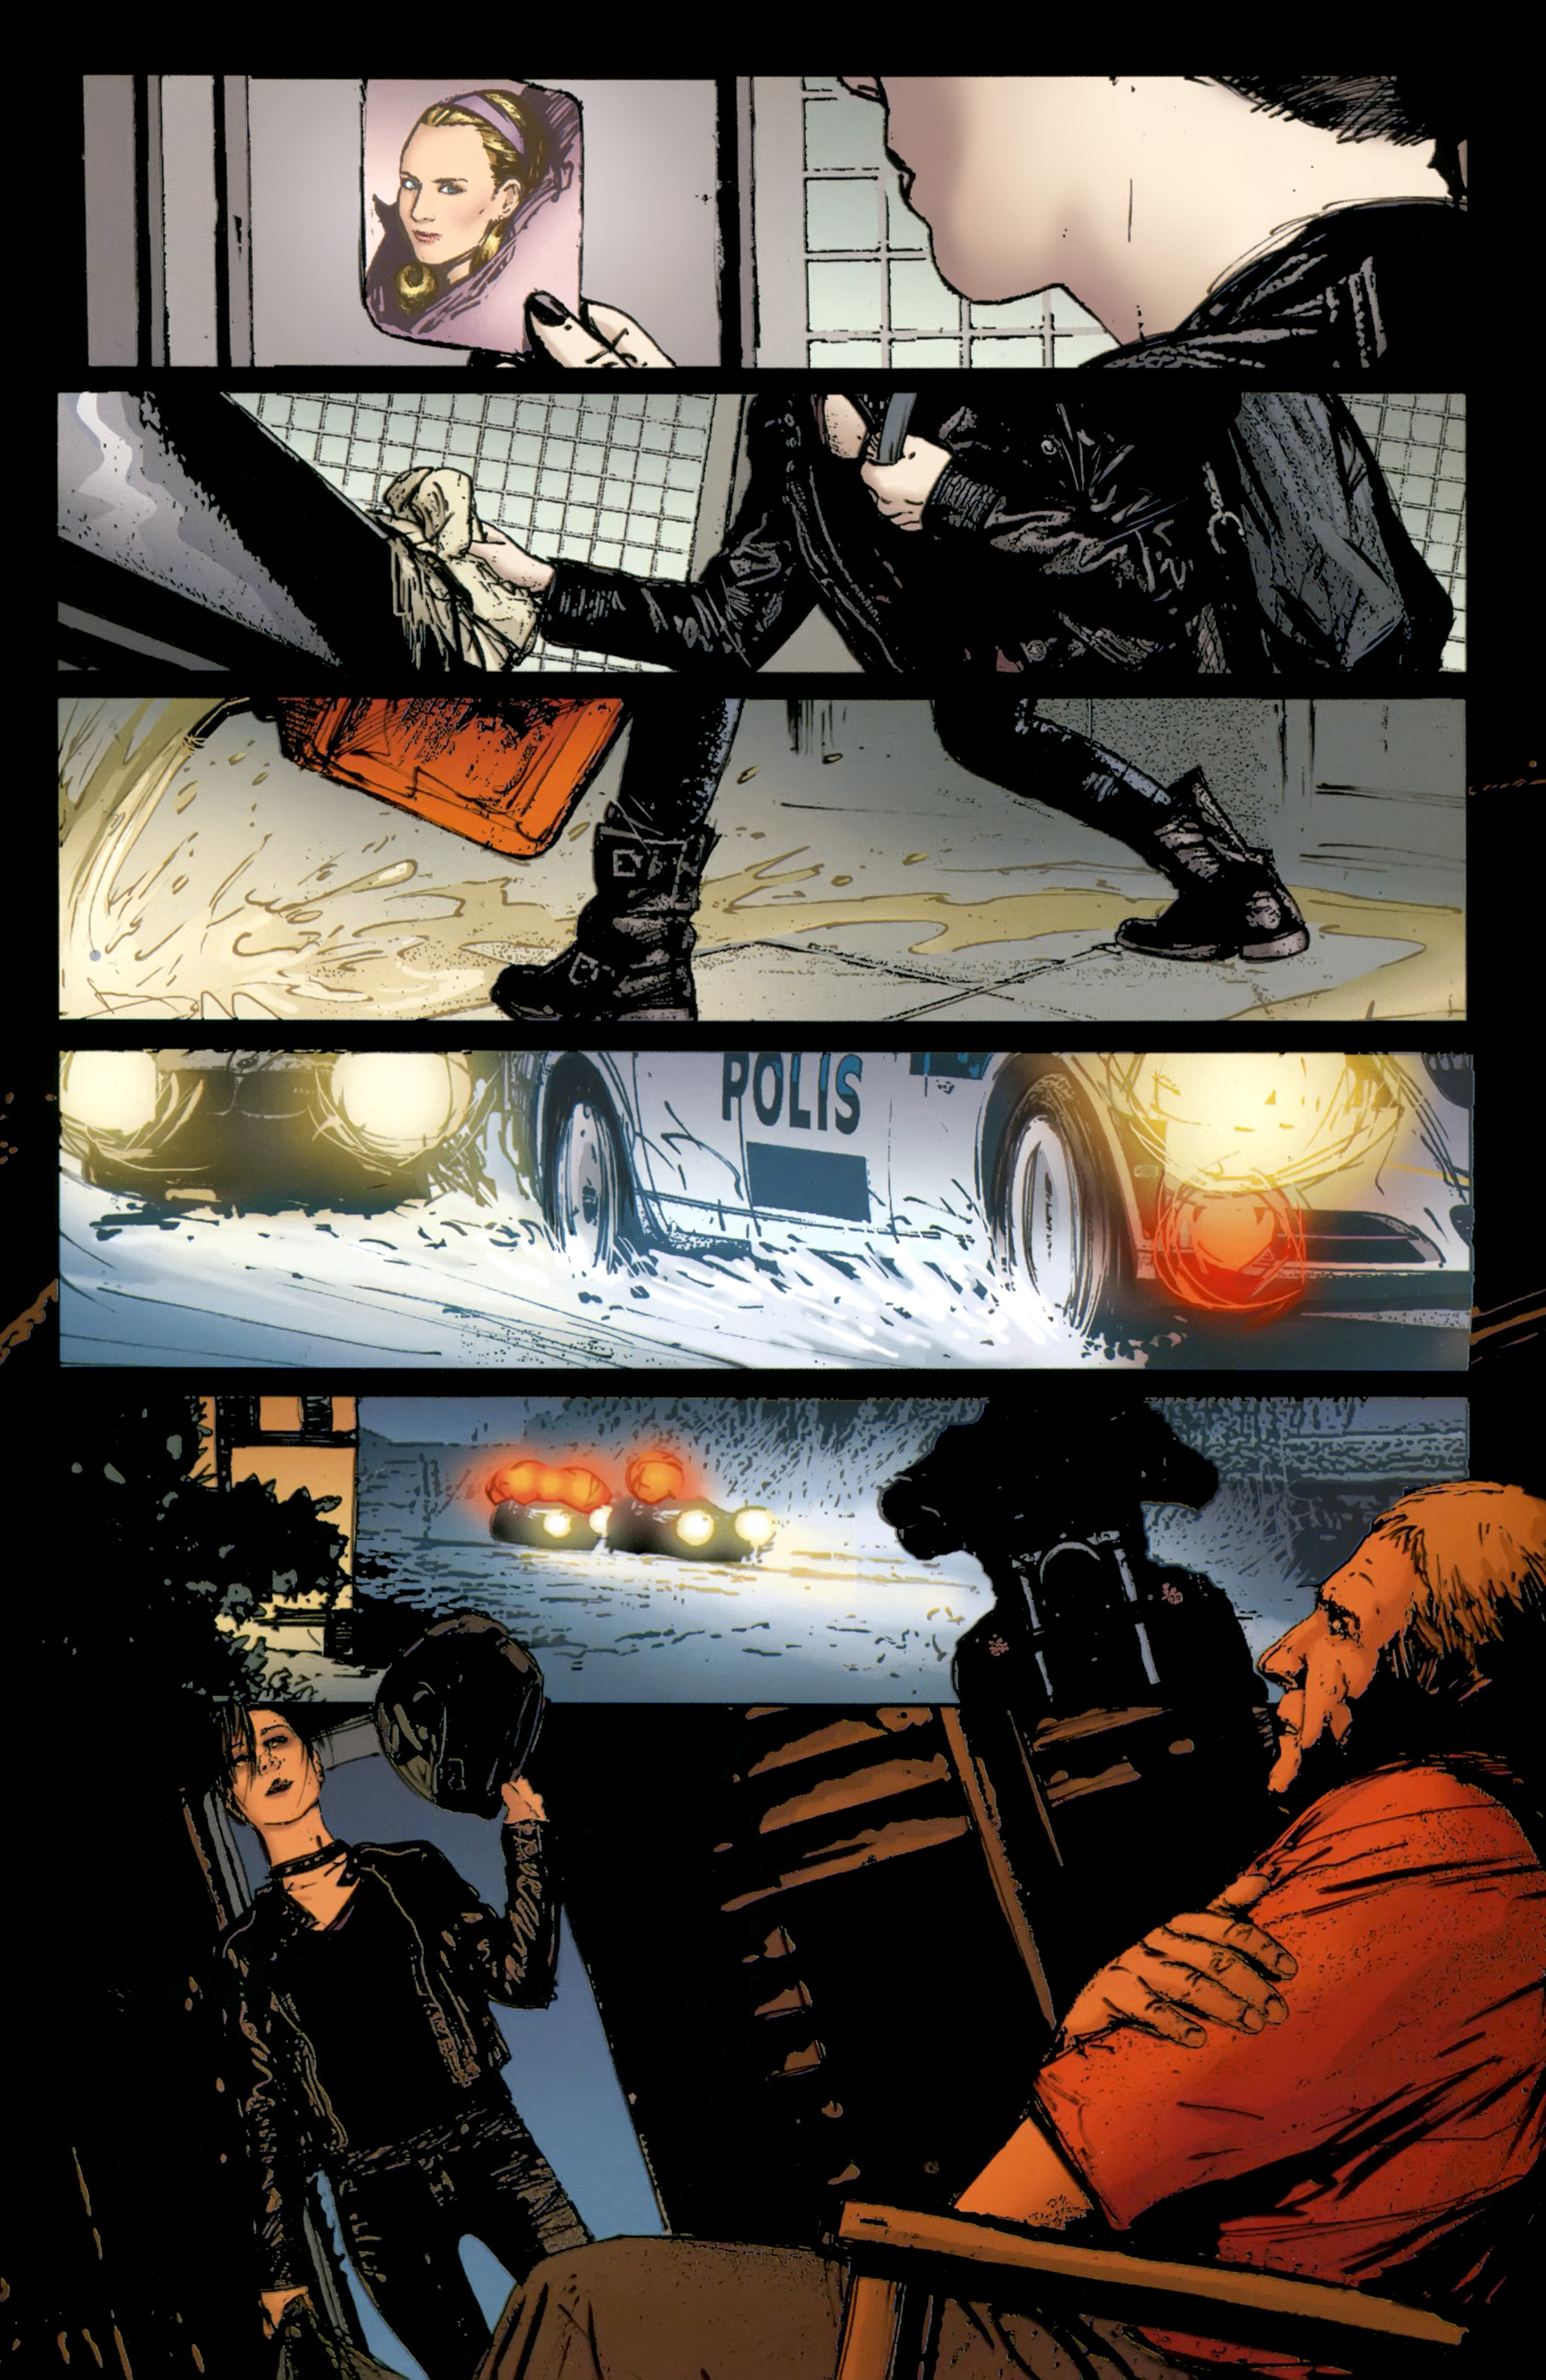 Read online The Girl With the Dragon Tattoo comic -  Issue # TPB 2 - 113